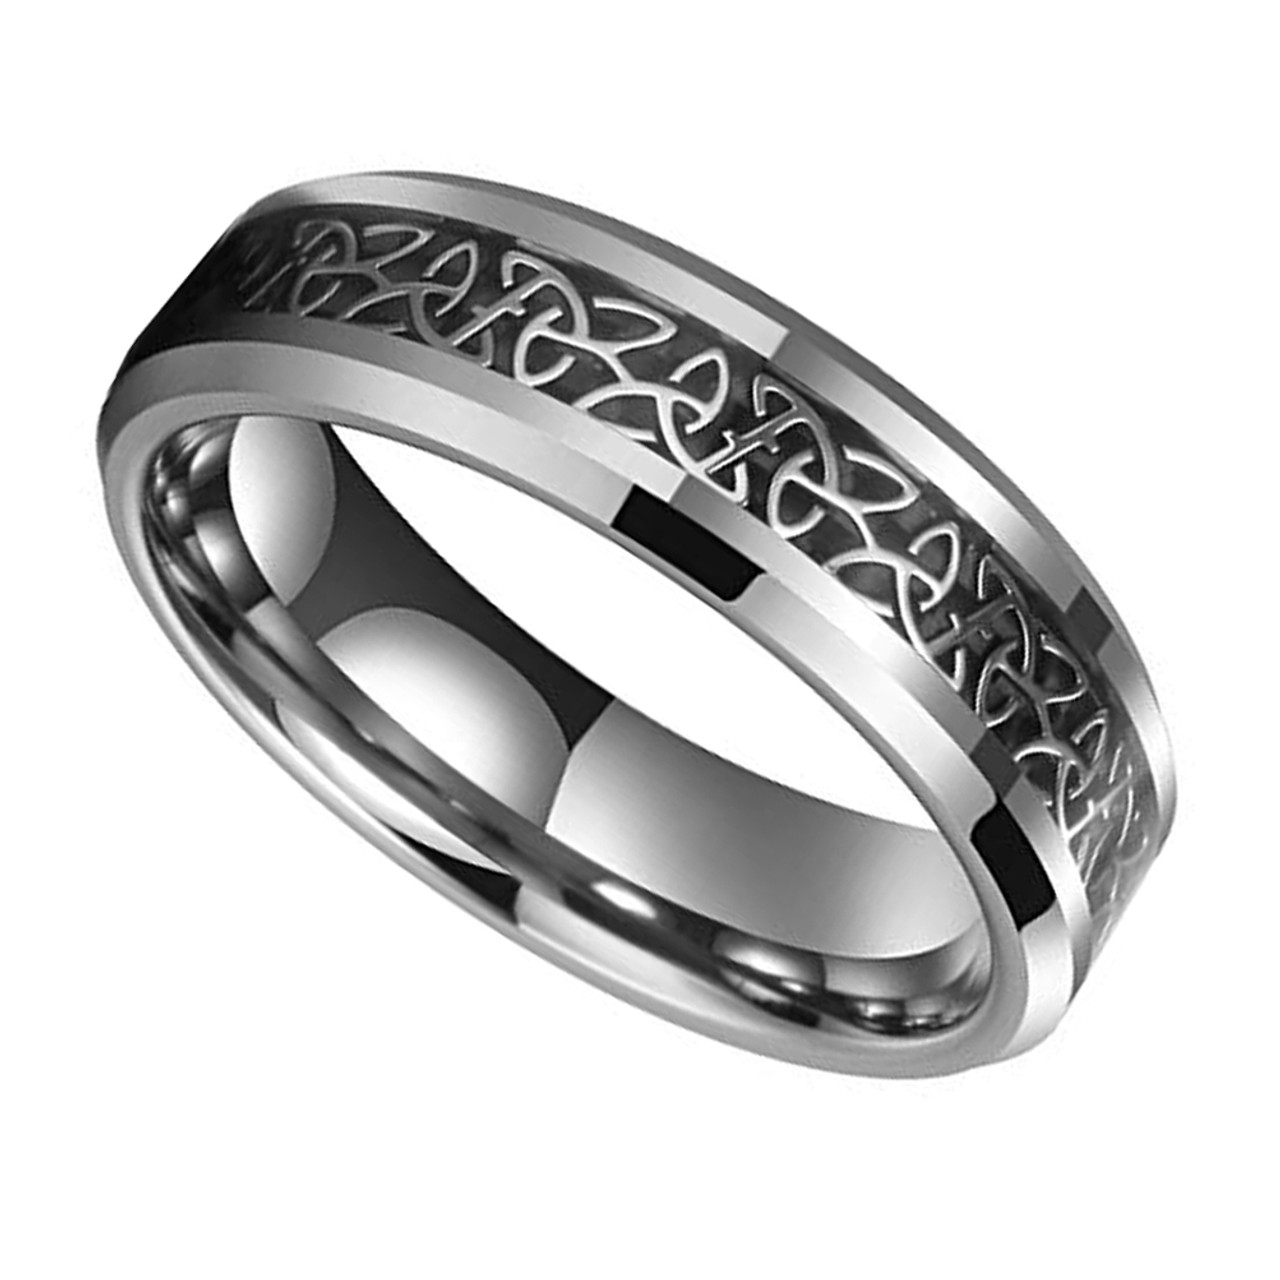 6mm Unisex Or Women S Tungsten Carbide Wedding Ring Band Silver